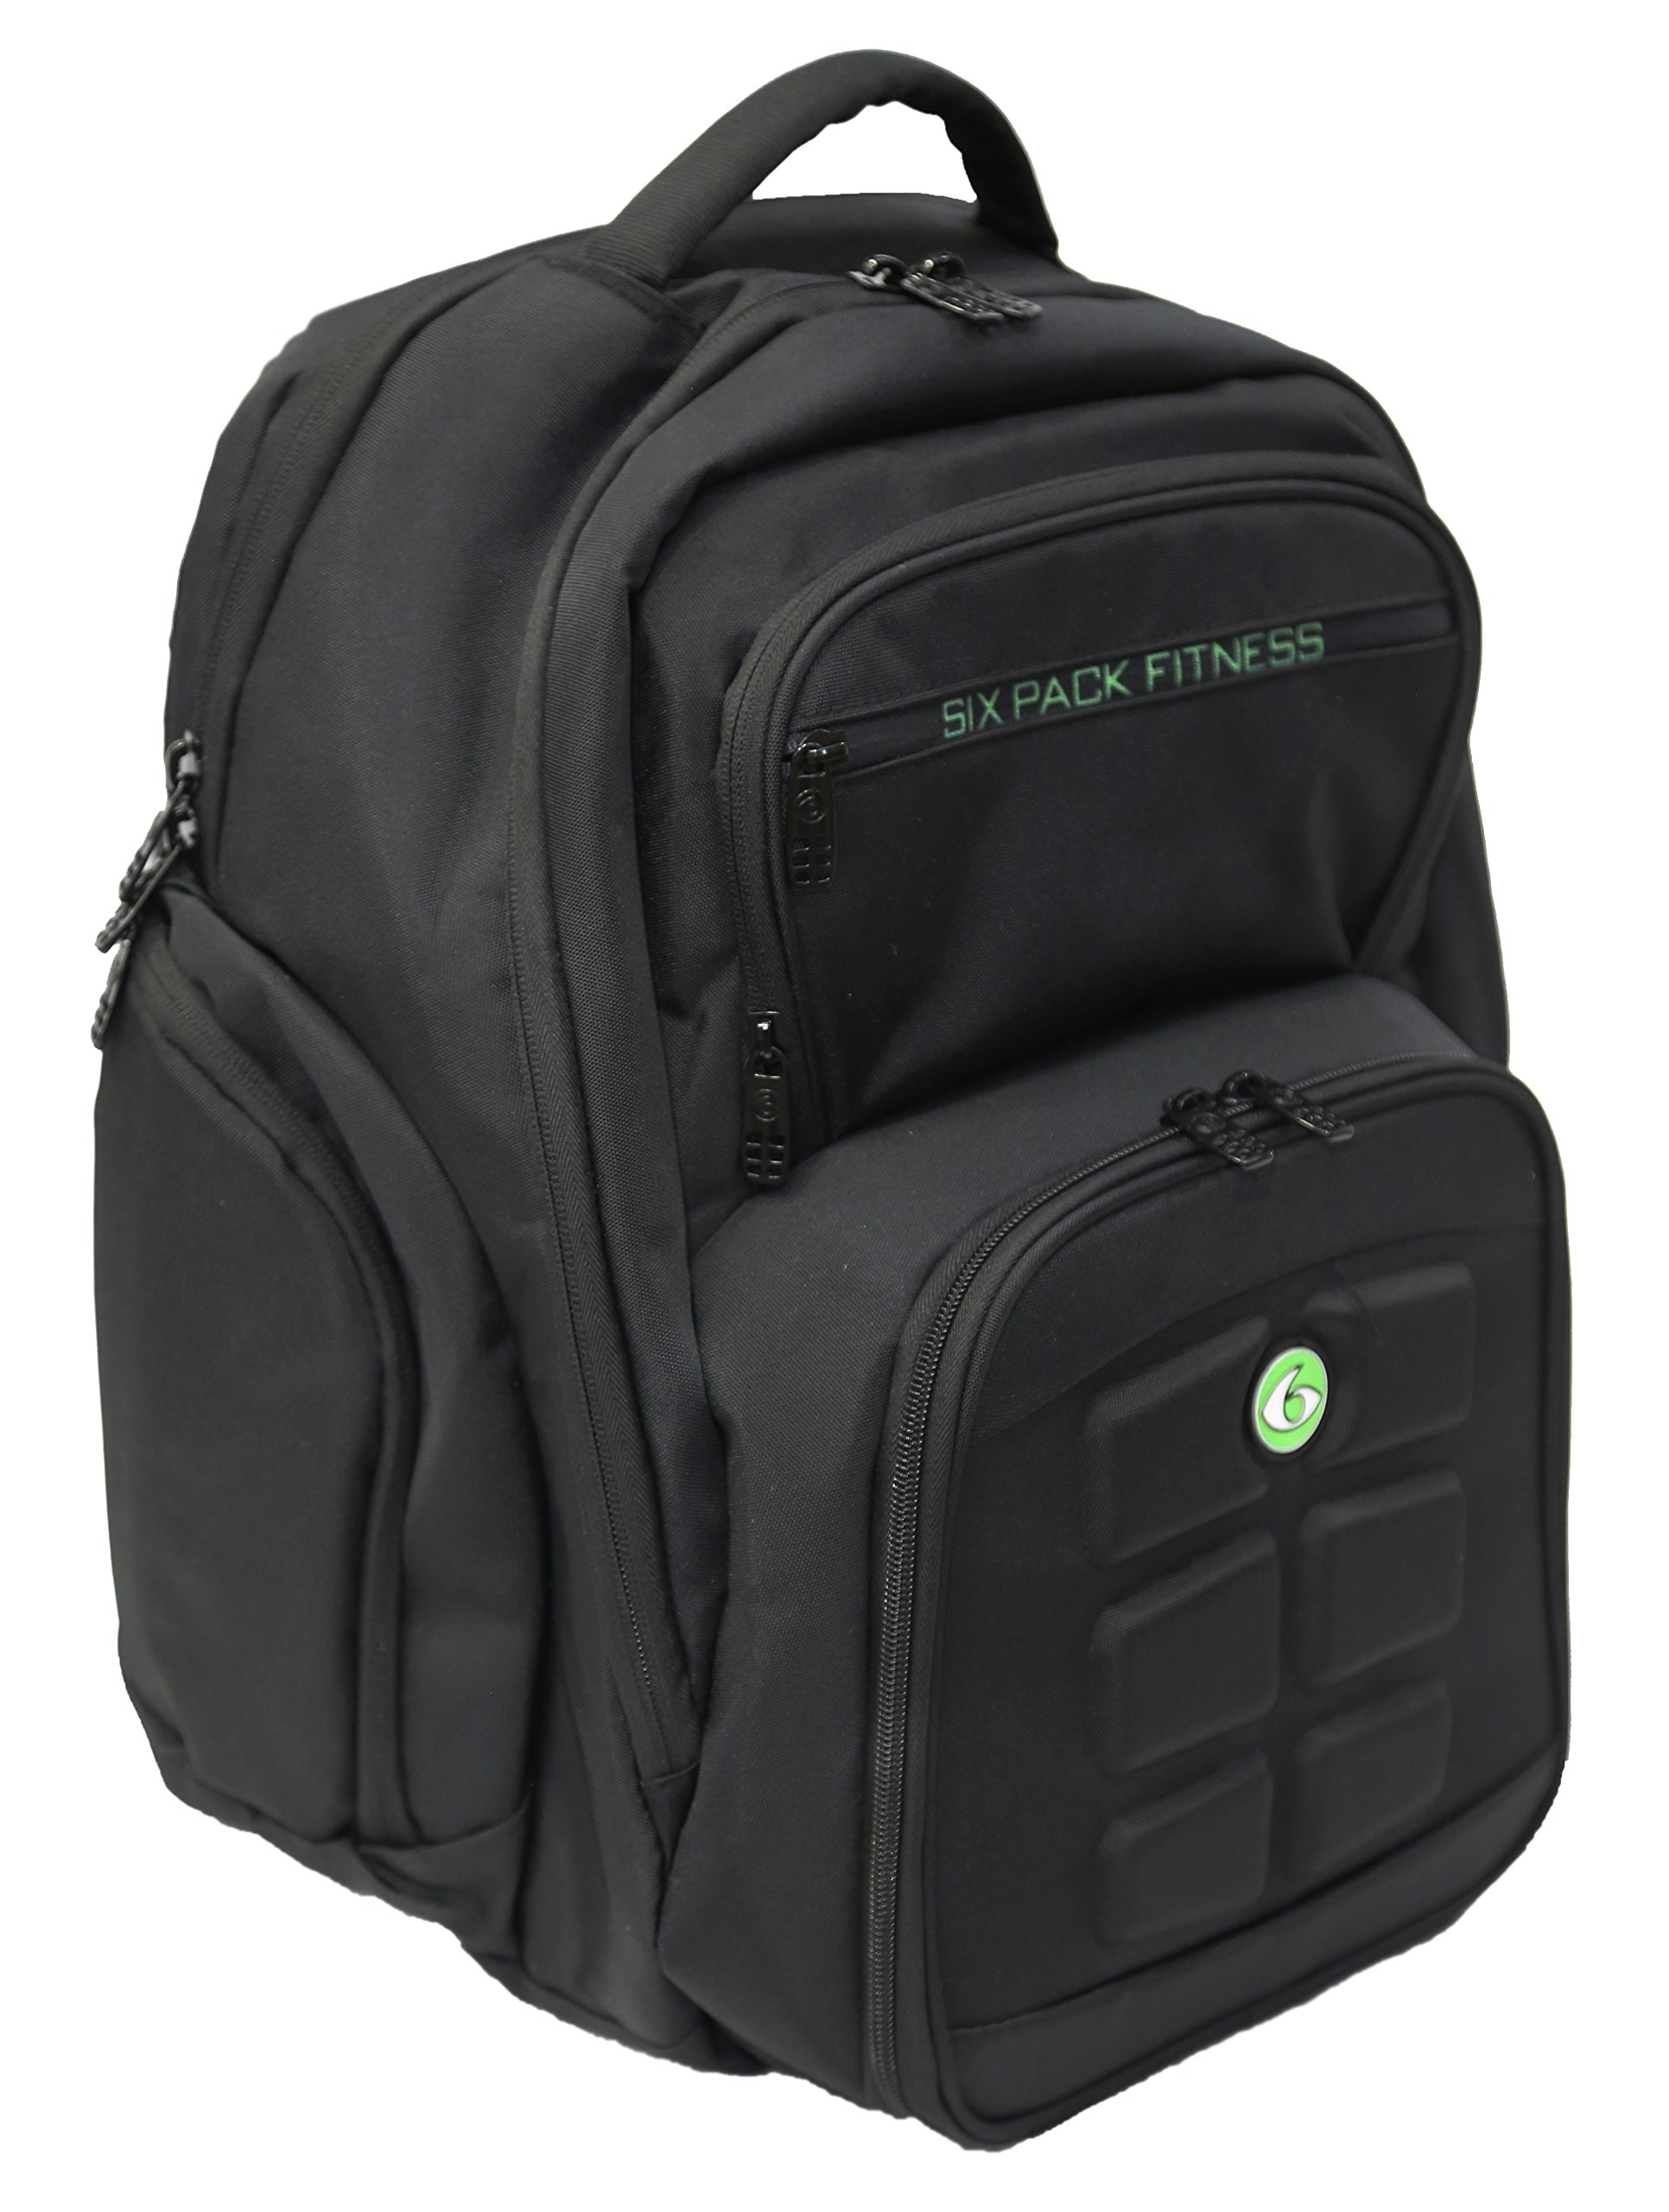 6 Pack Fitness Expedition Backpack W/ Removable Meal Management System 300 Black/Neon Green